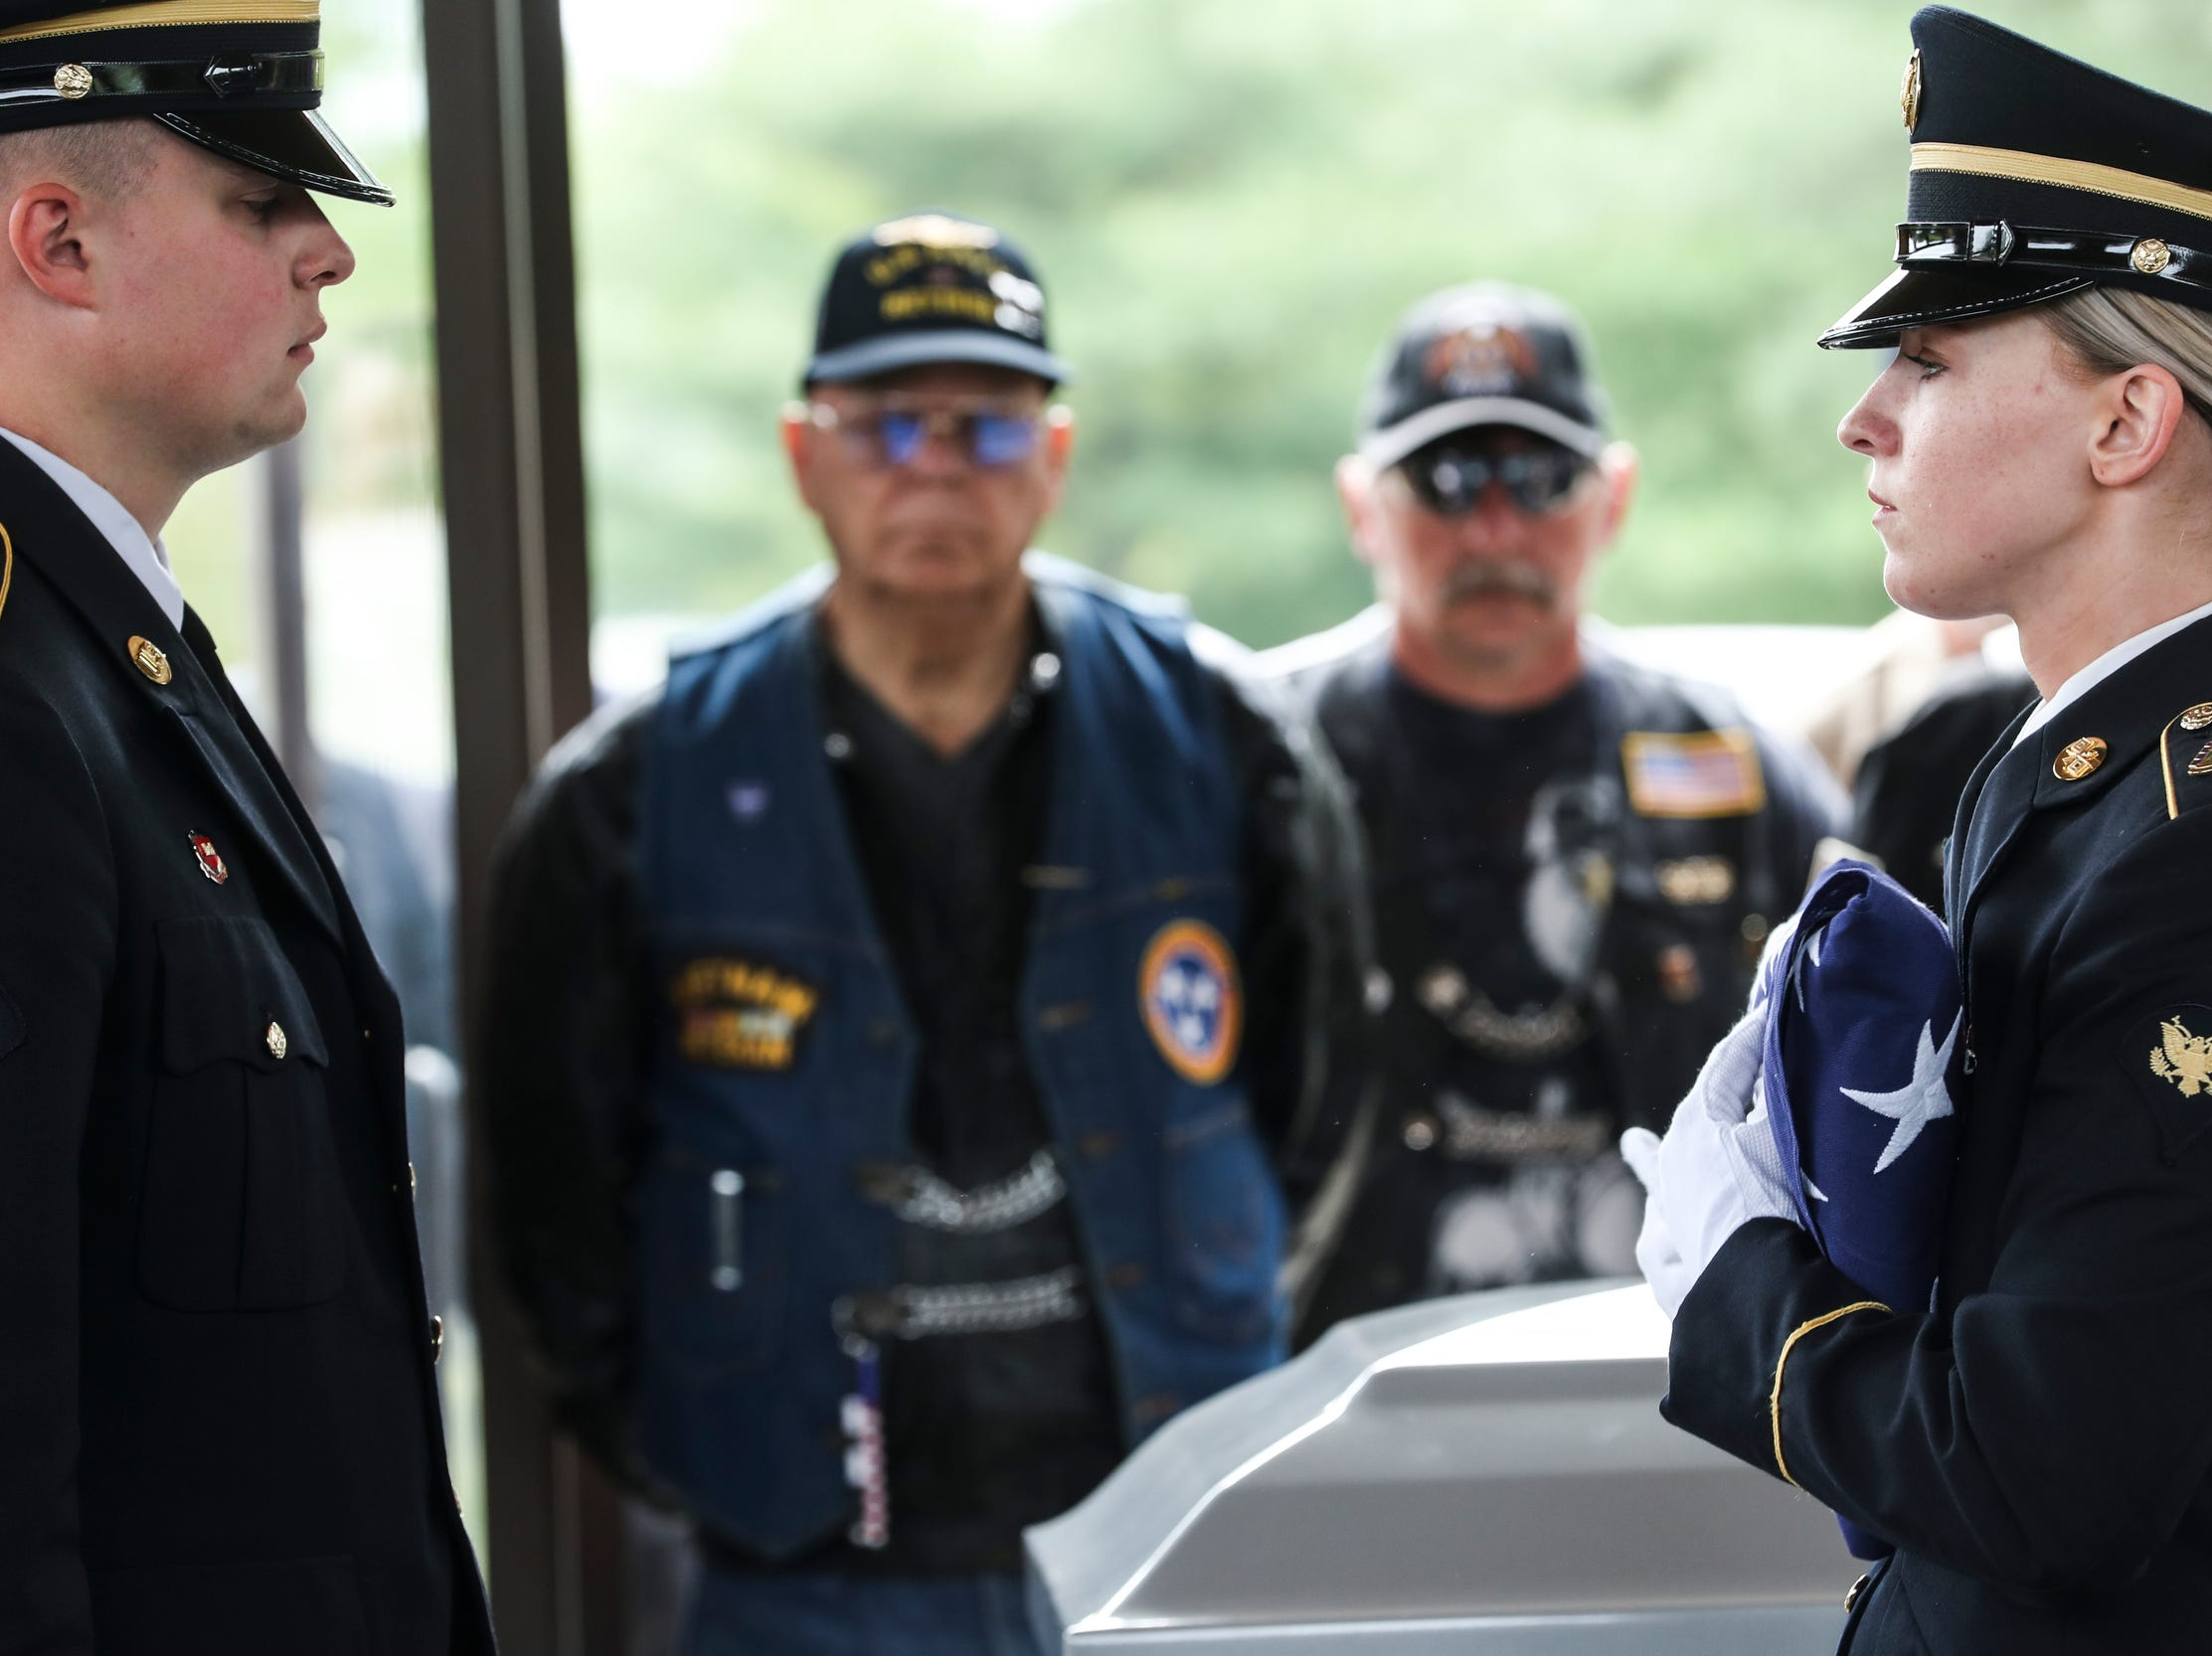 April 17, 2019 - Veterans, Patriot Guard Riders and community members gathered for a Committal Service with Military Honors at the West Tennessee State Veterans Cemetery on Wednesday morning for Army veteran Willliam Thomas Nahlen and Air Force veteran Roderick Allen Haynes.